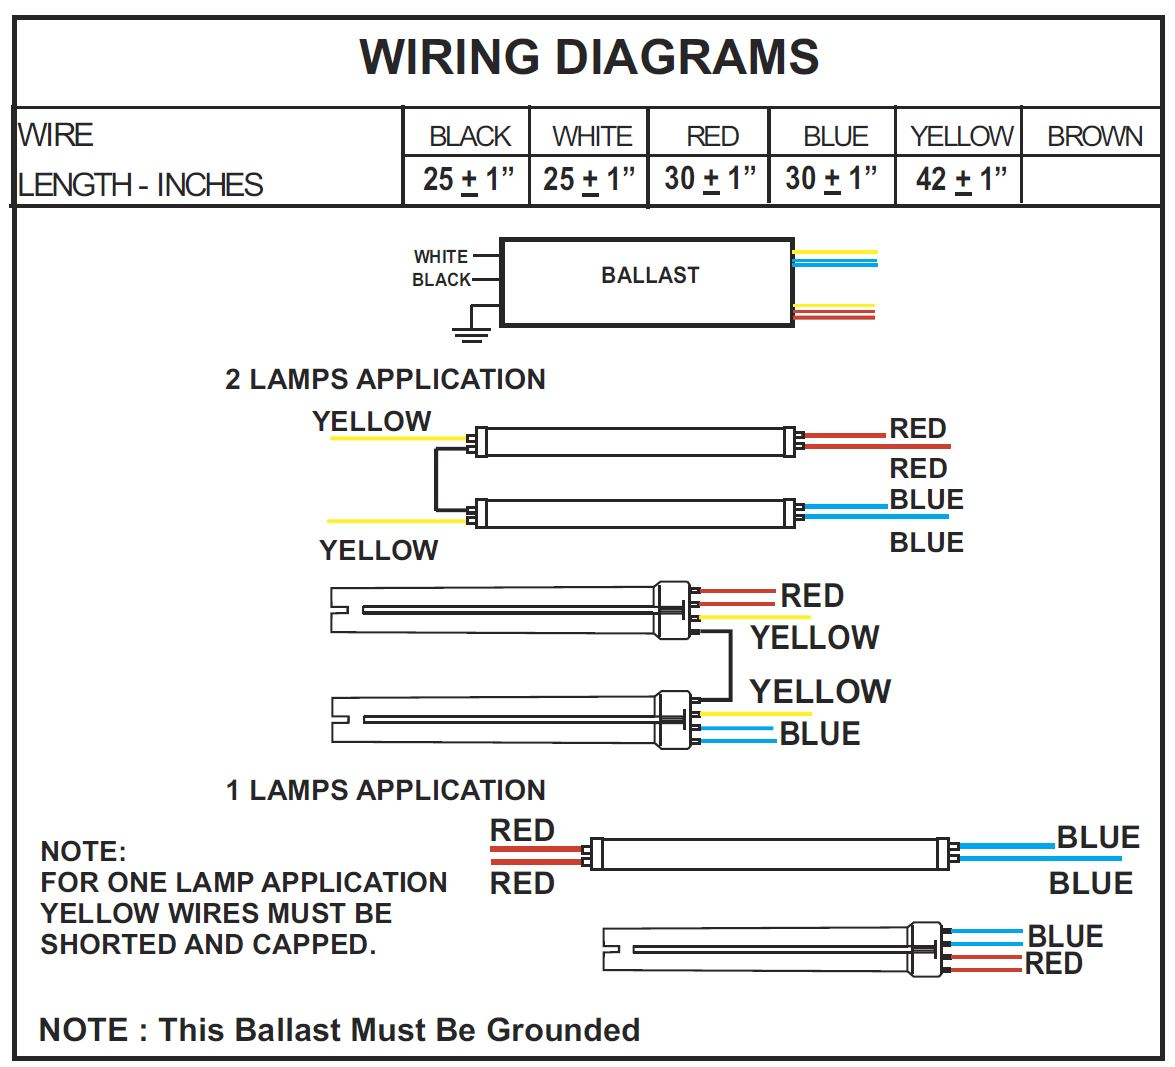 t5 fulham ballast wiring diagram 2 lamp t5 multi-purpose electronic ballast | usalight.com t5 ballast wiring diagram 120 277 #11